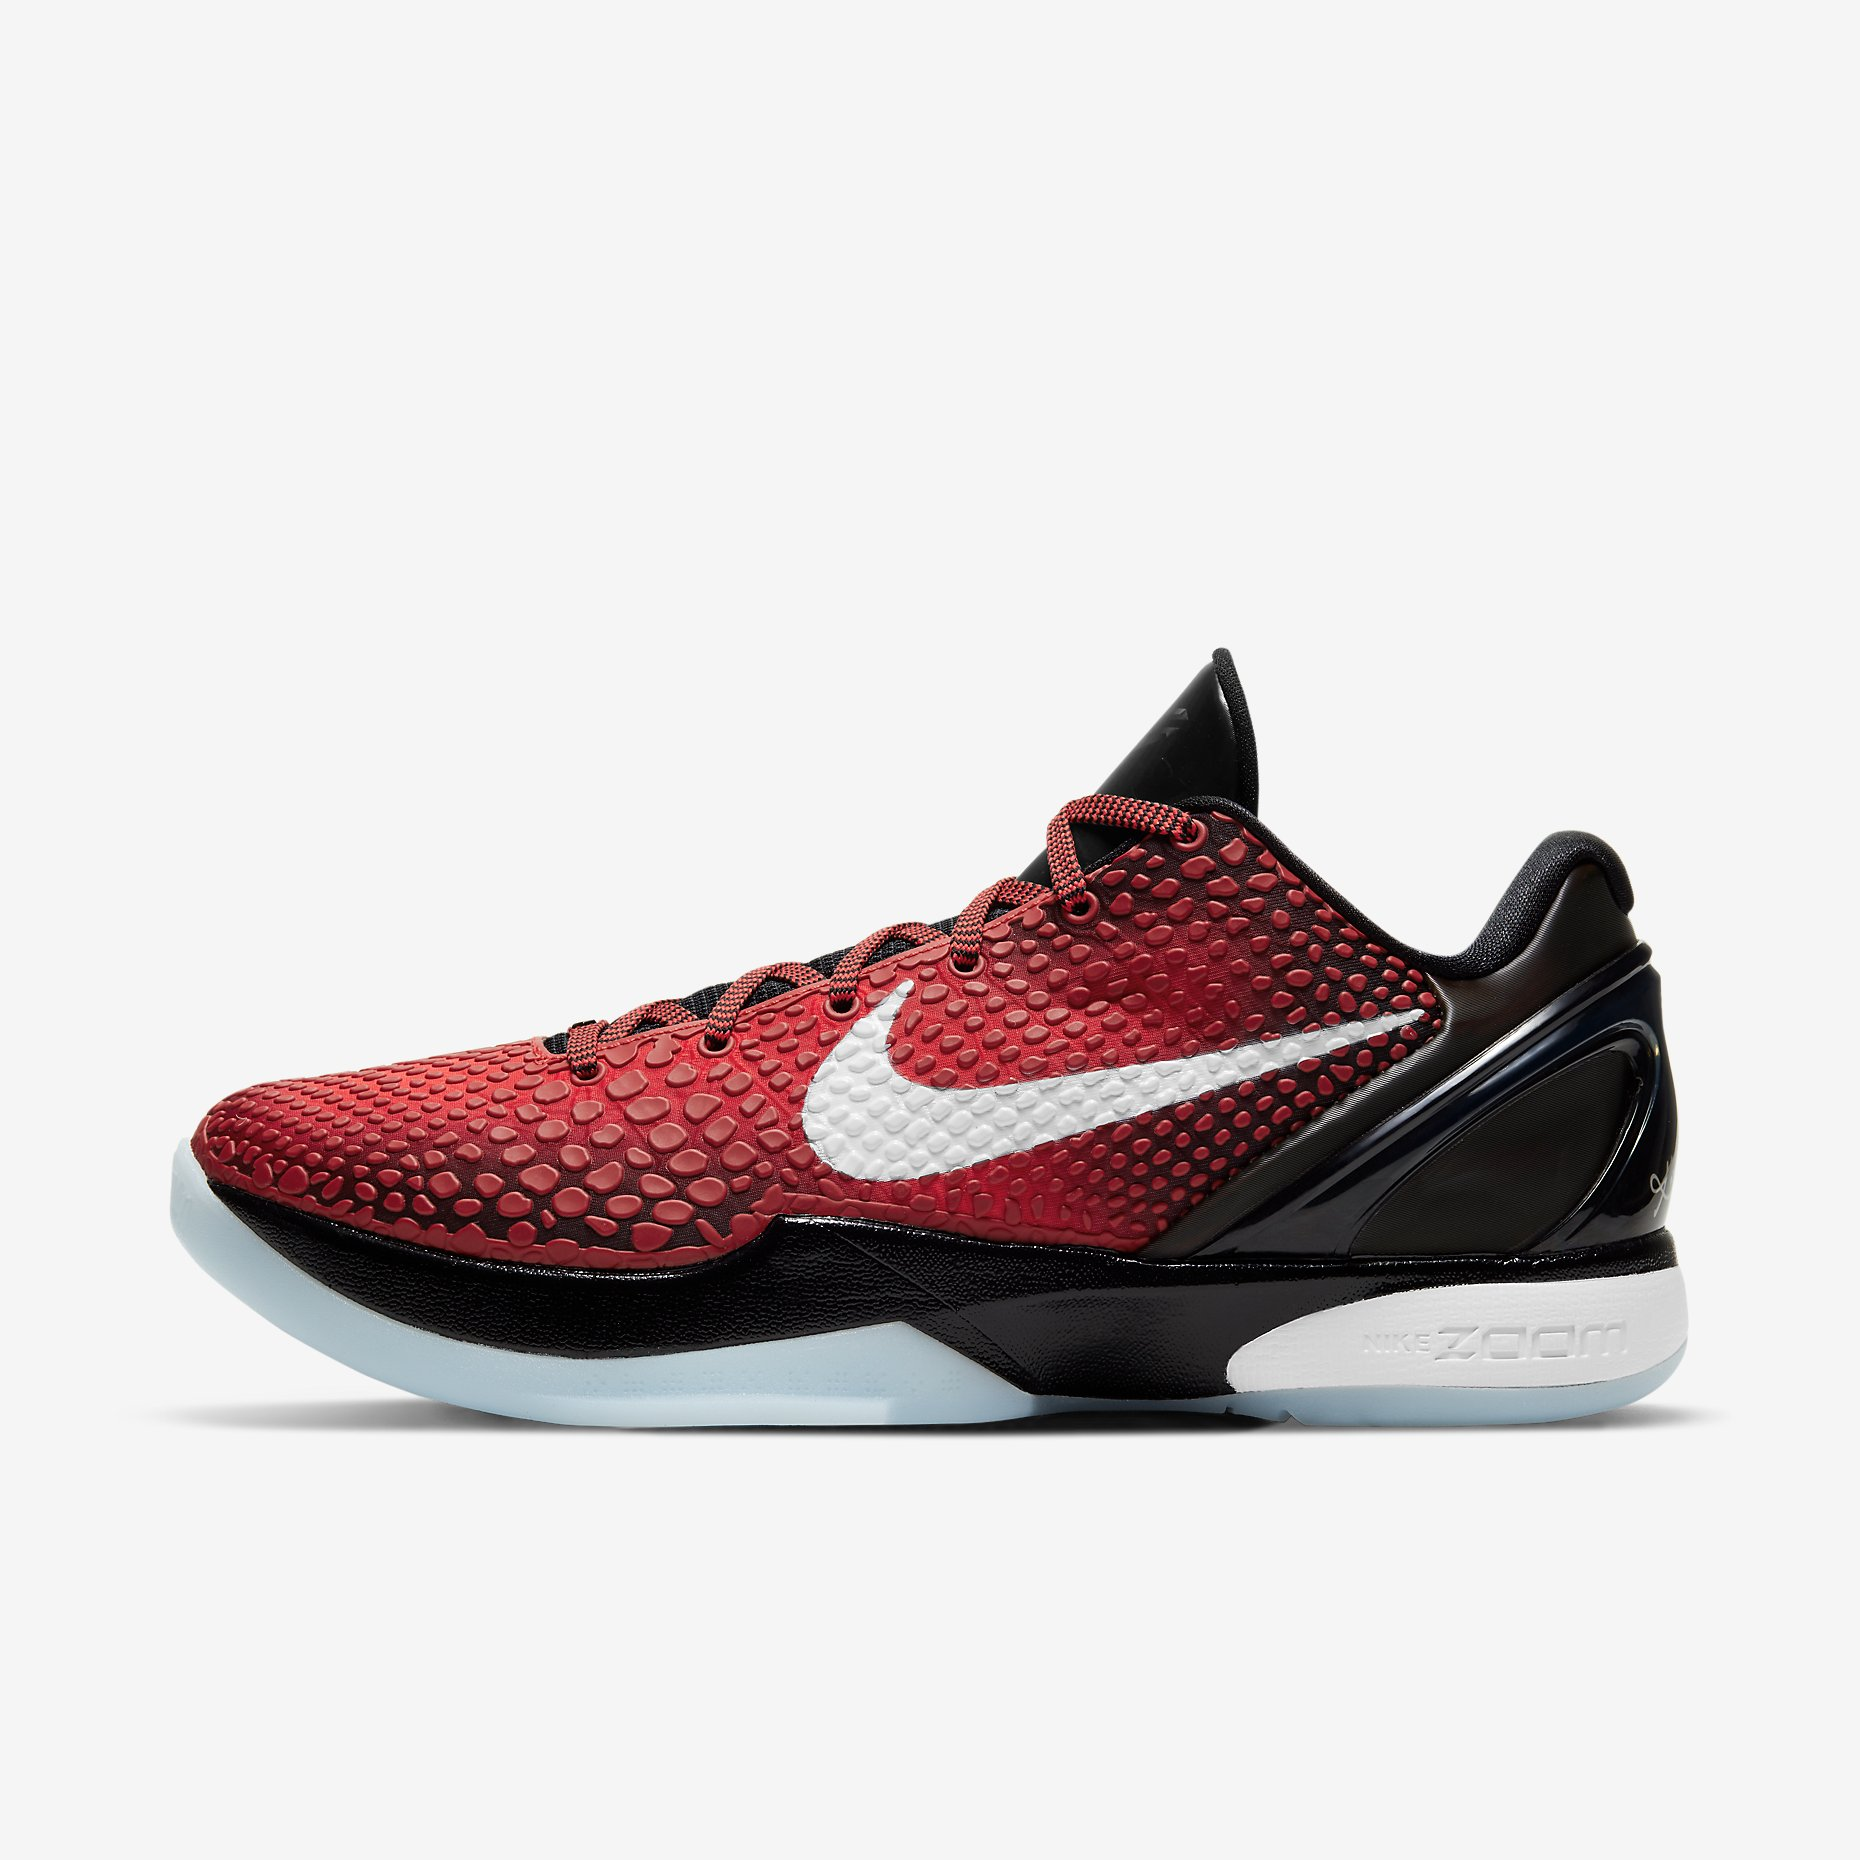 Nike Kobe 6 Protro Challenge Red 'All Star'}